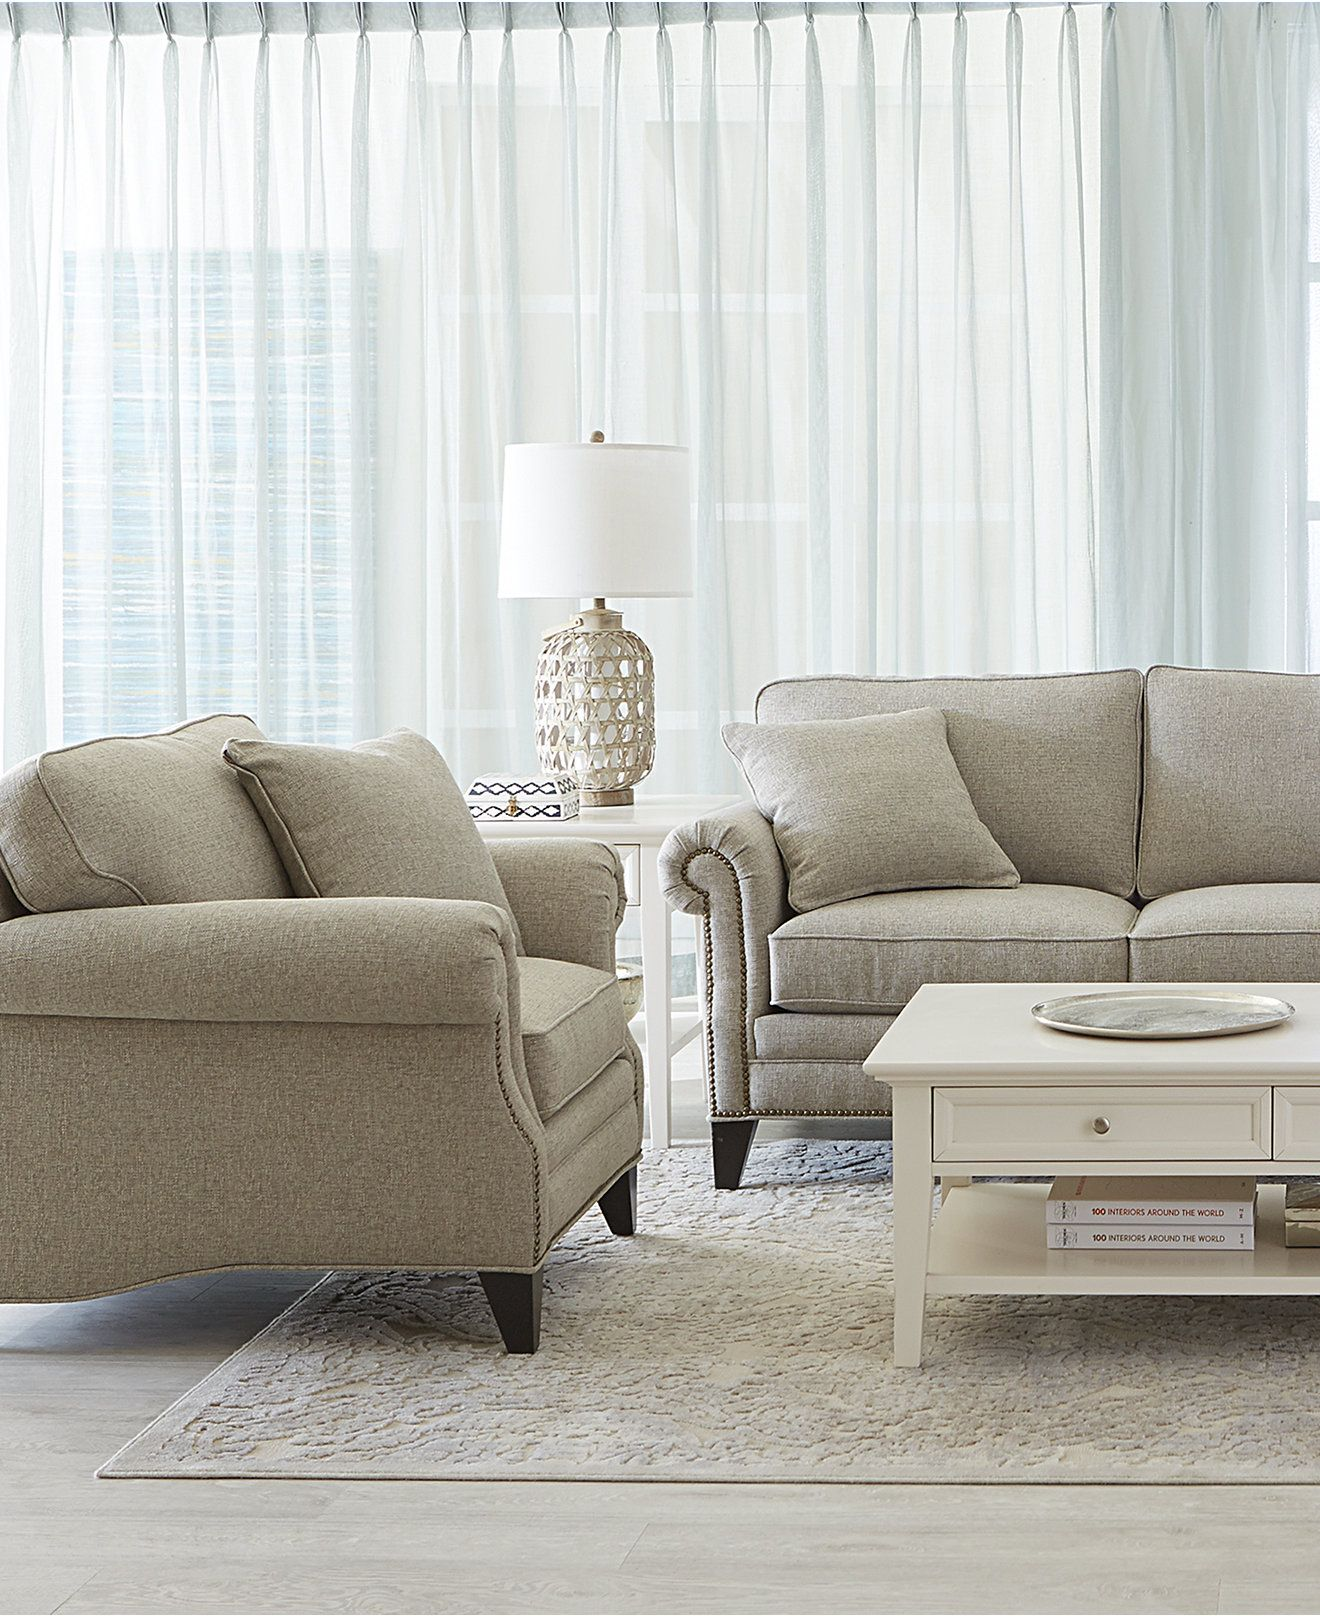 Kenton Fabric Sofa Parchment Pull Out Bed With Air Mattress Scarlette Living Room Furniture